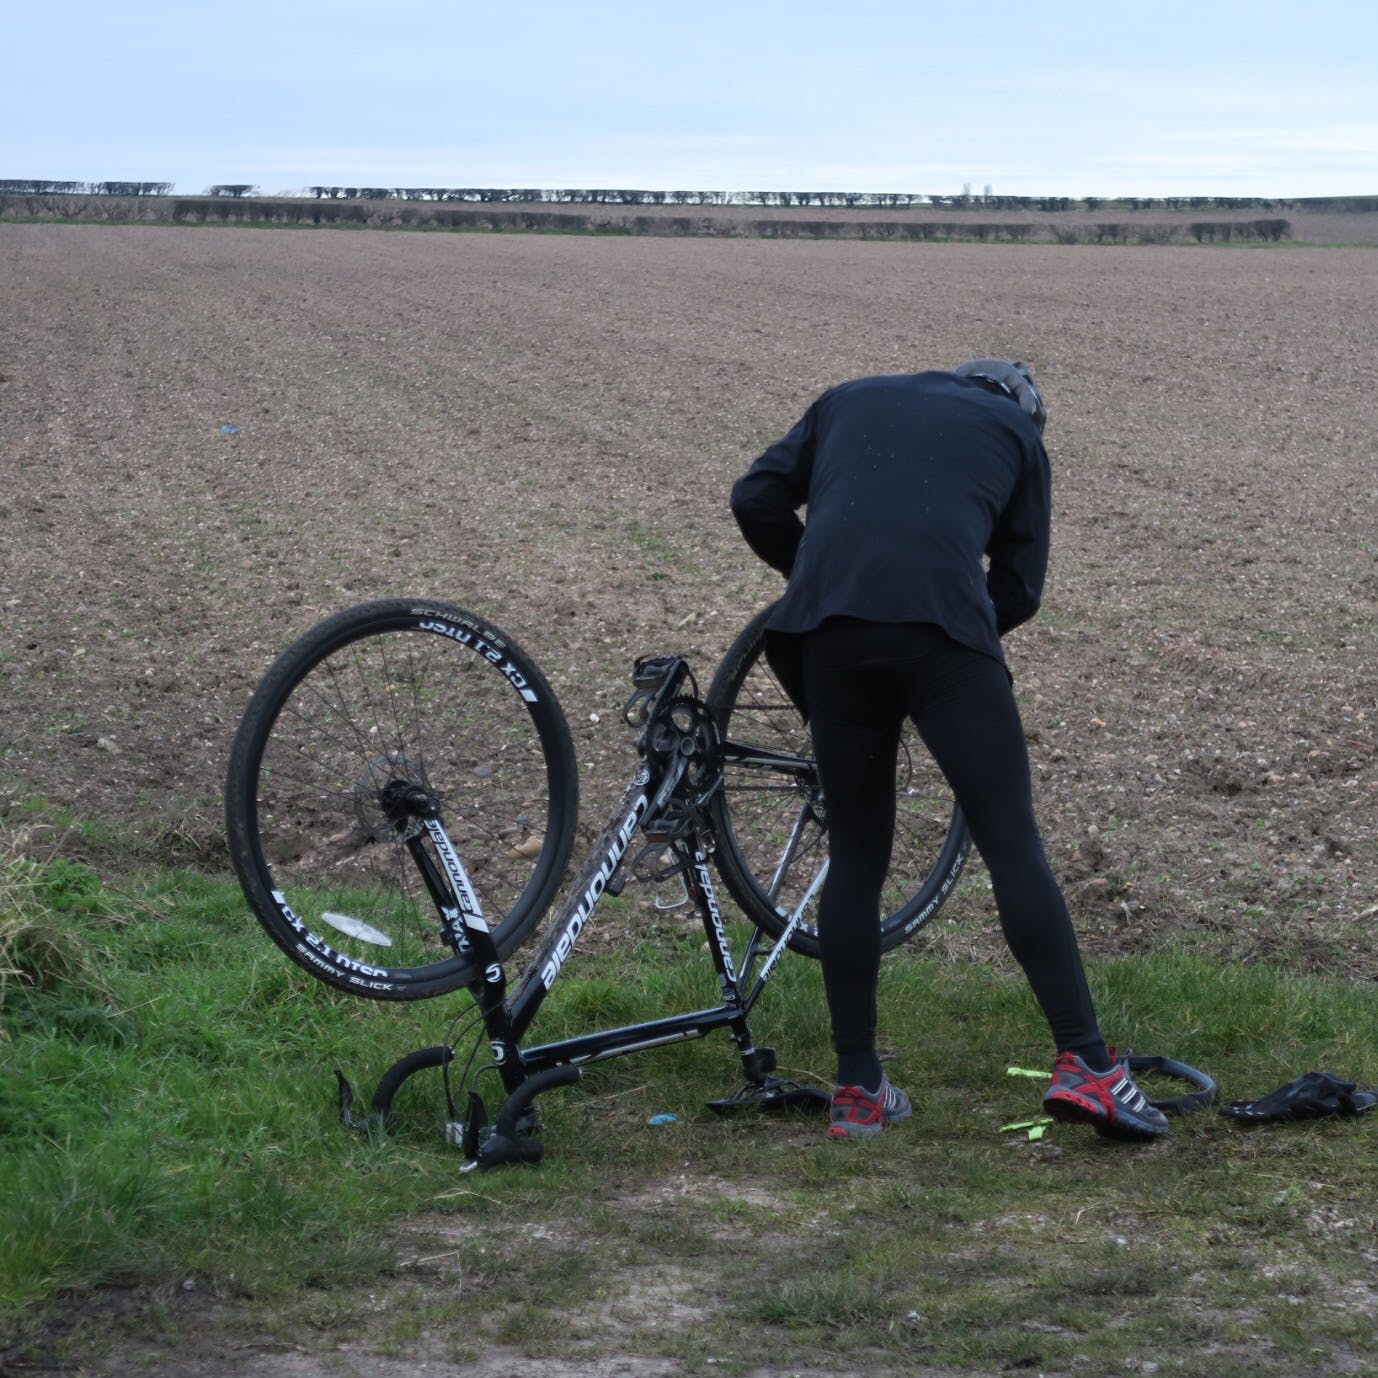 Free stock photo of bicycle, cyclist, fields, puncture